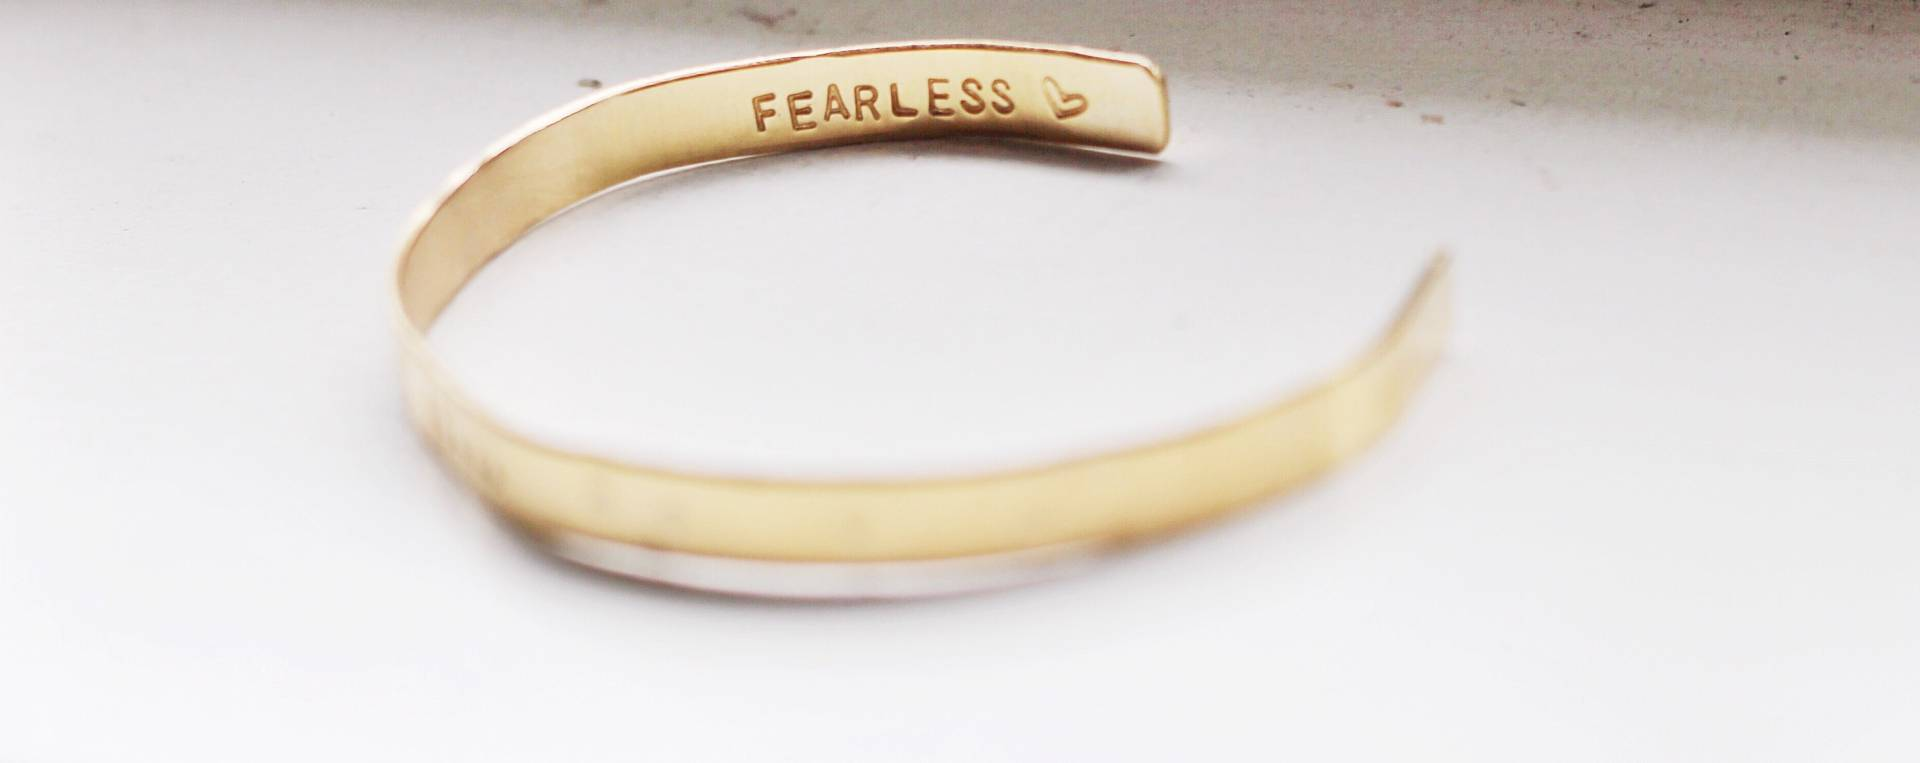 the-jewelry-box- fearless